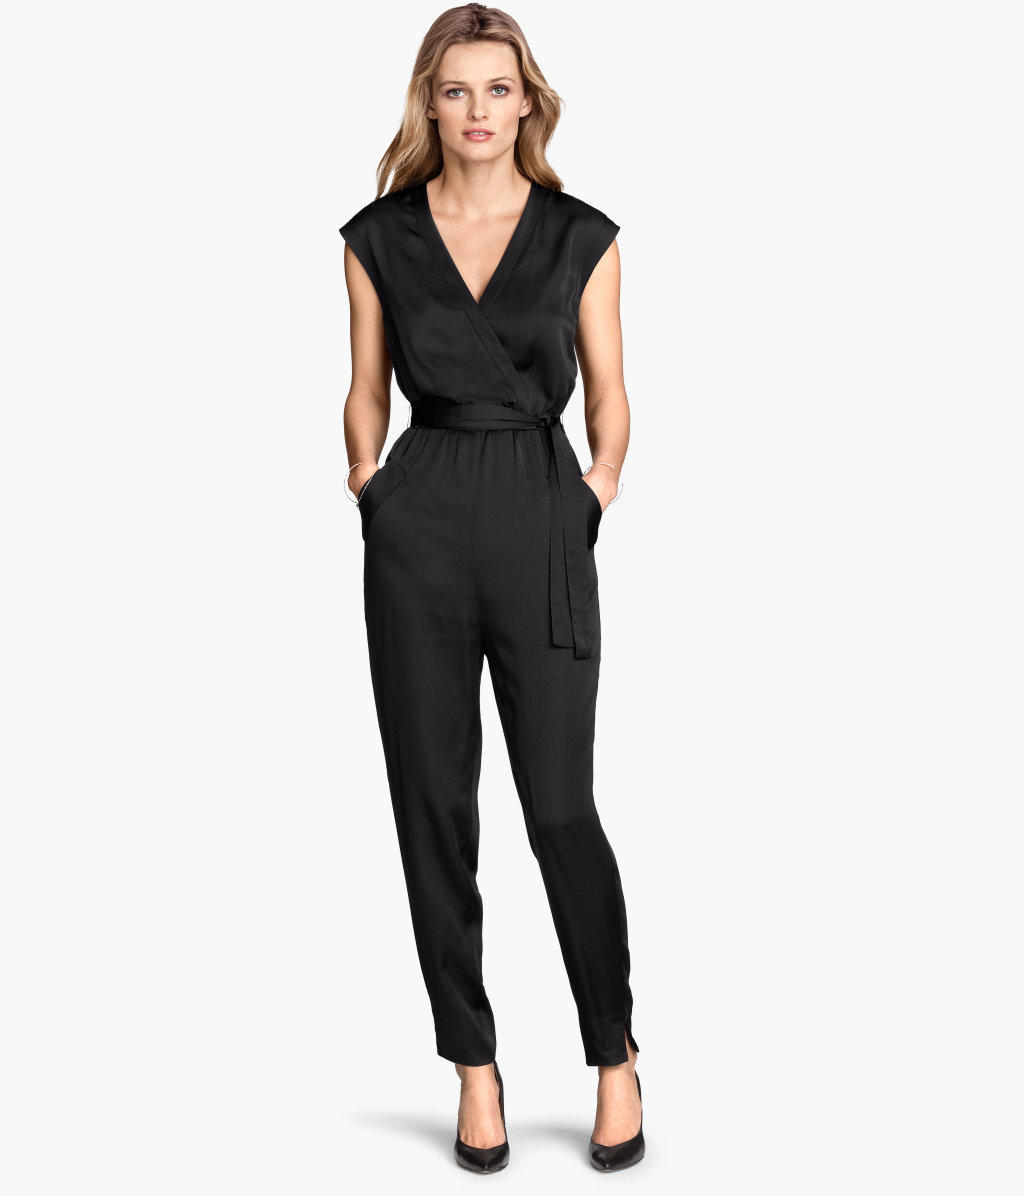 h m sleeveless jumpsuit from h m epic wishlist. Black Bedroom Furniture Sets. Home Design Ideas